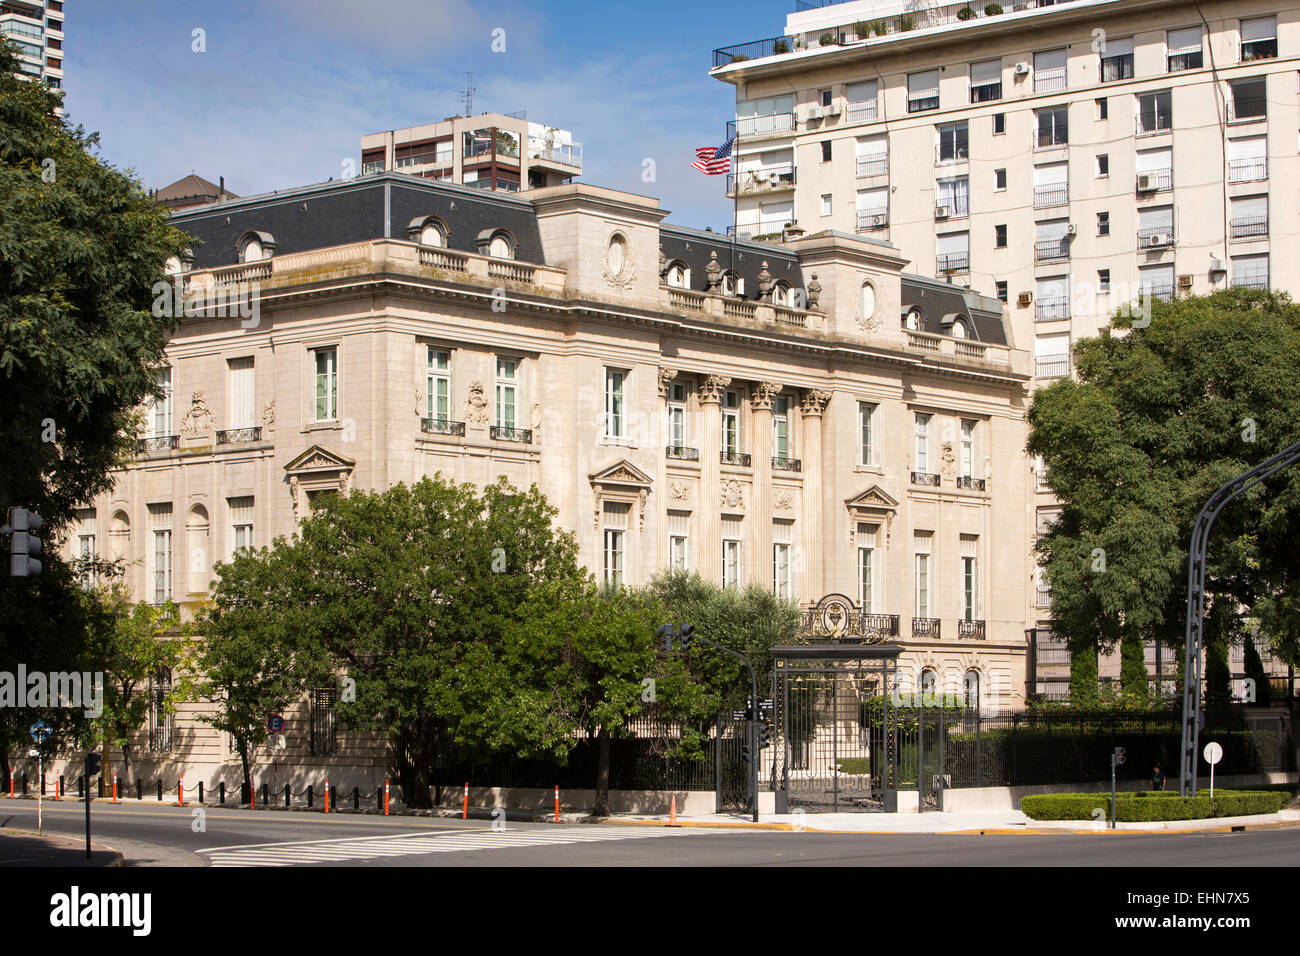 Argentina, Buenos Aires, Retiro, Av del Libertador, front of United States of America Embassy - Stock Image